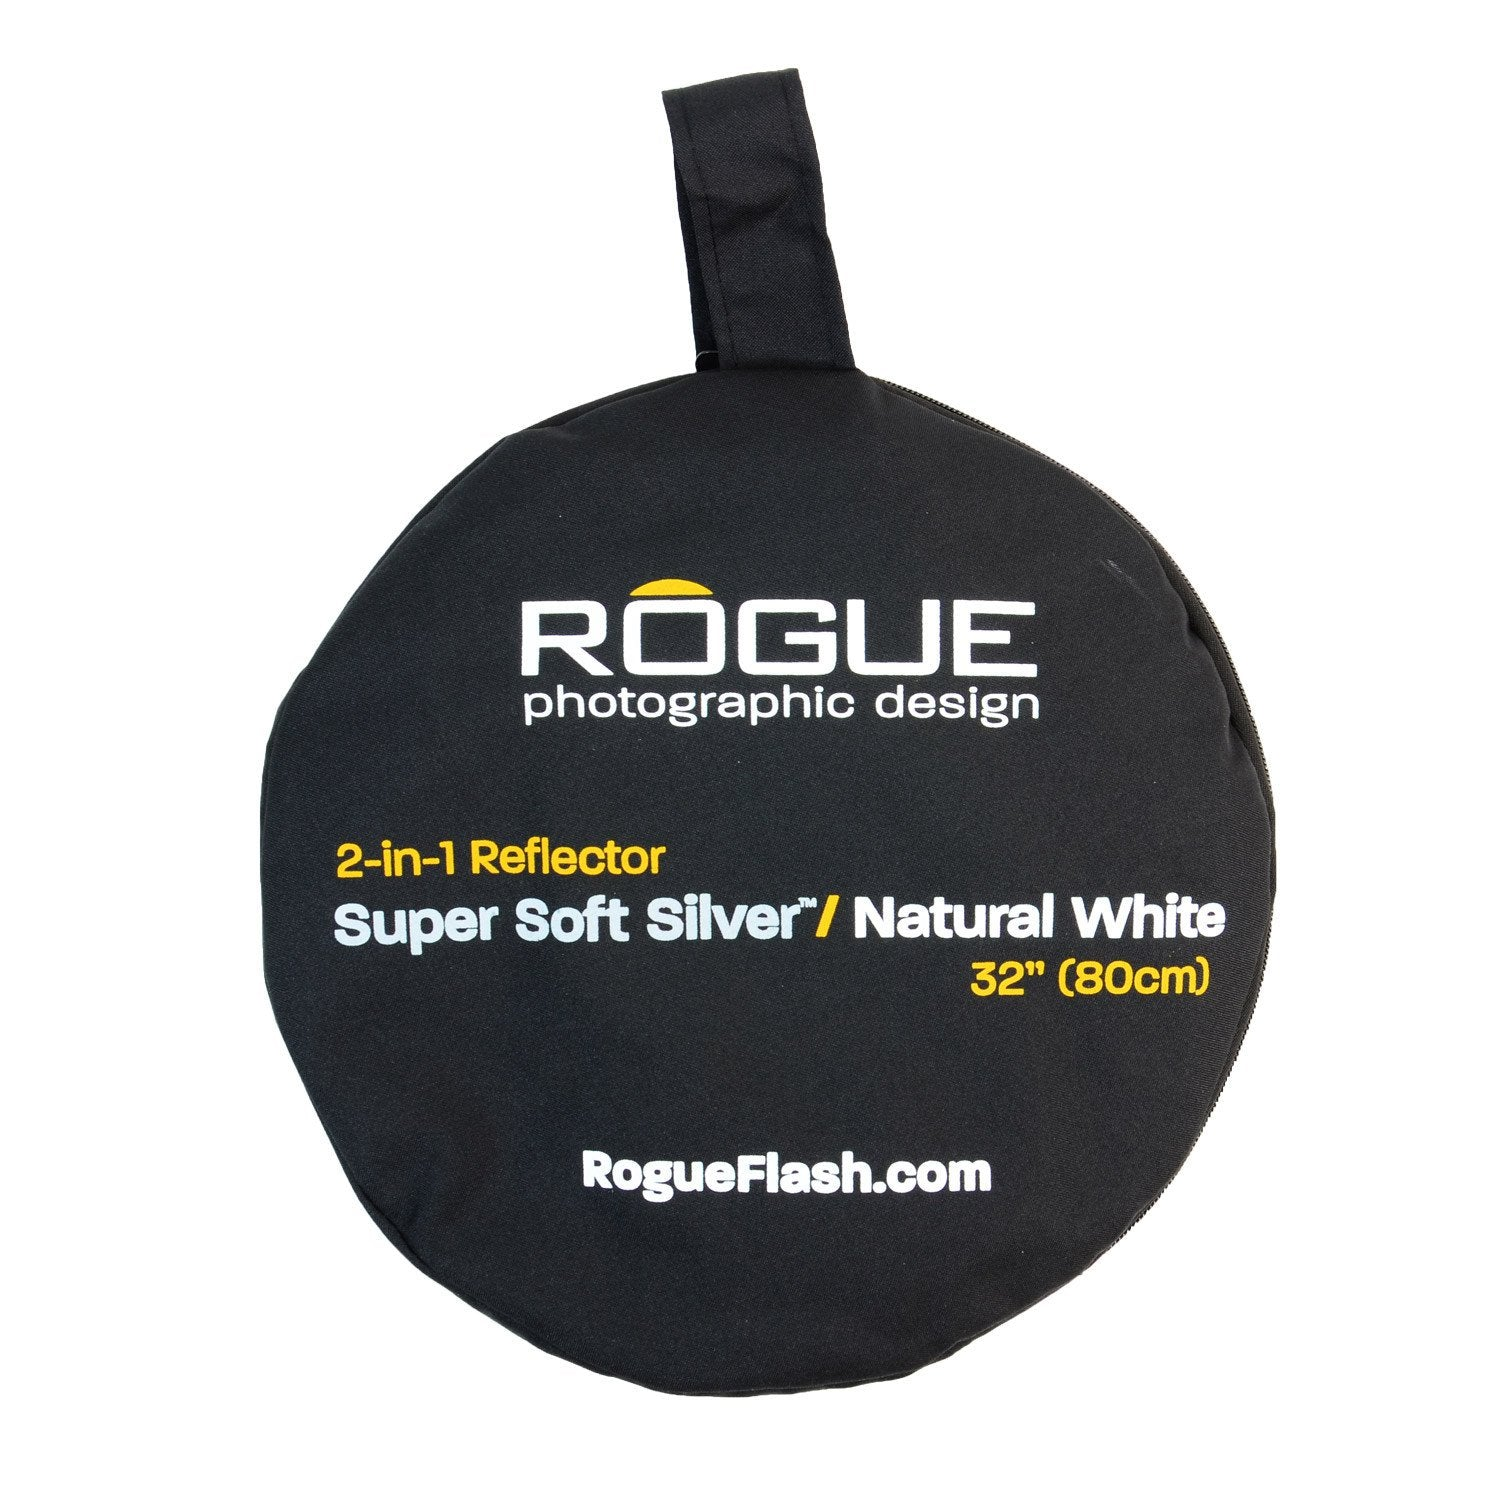 "ExpoImaging 32"" 2-in-1 Reflector - Super Soft Silver/Natural White"